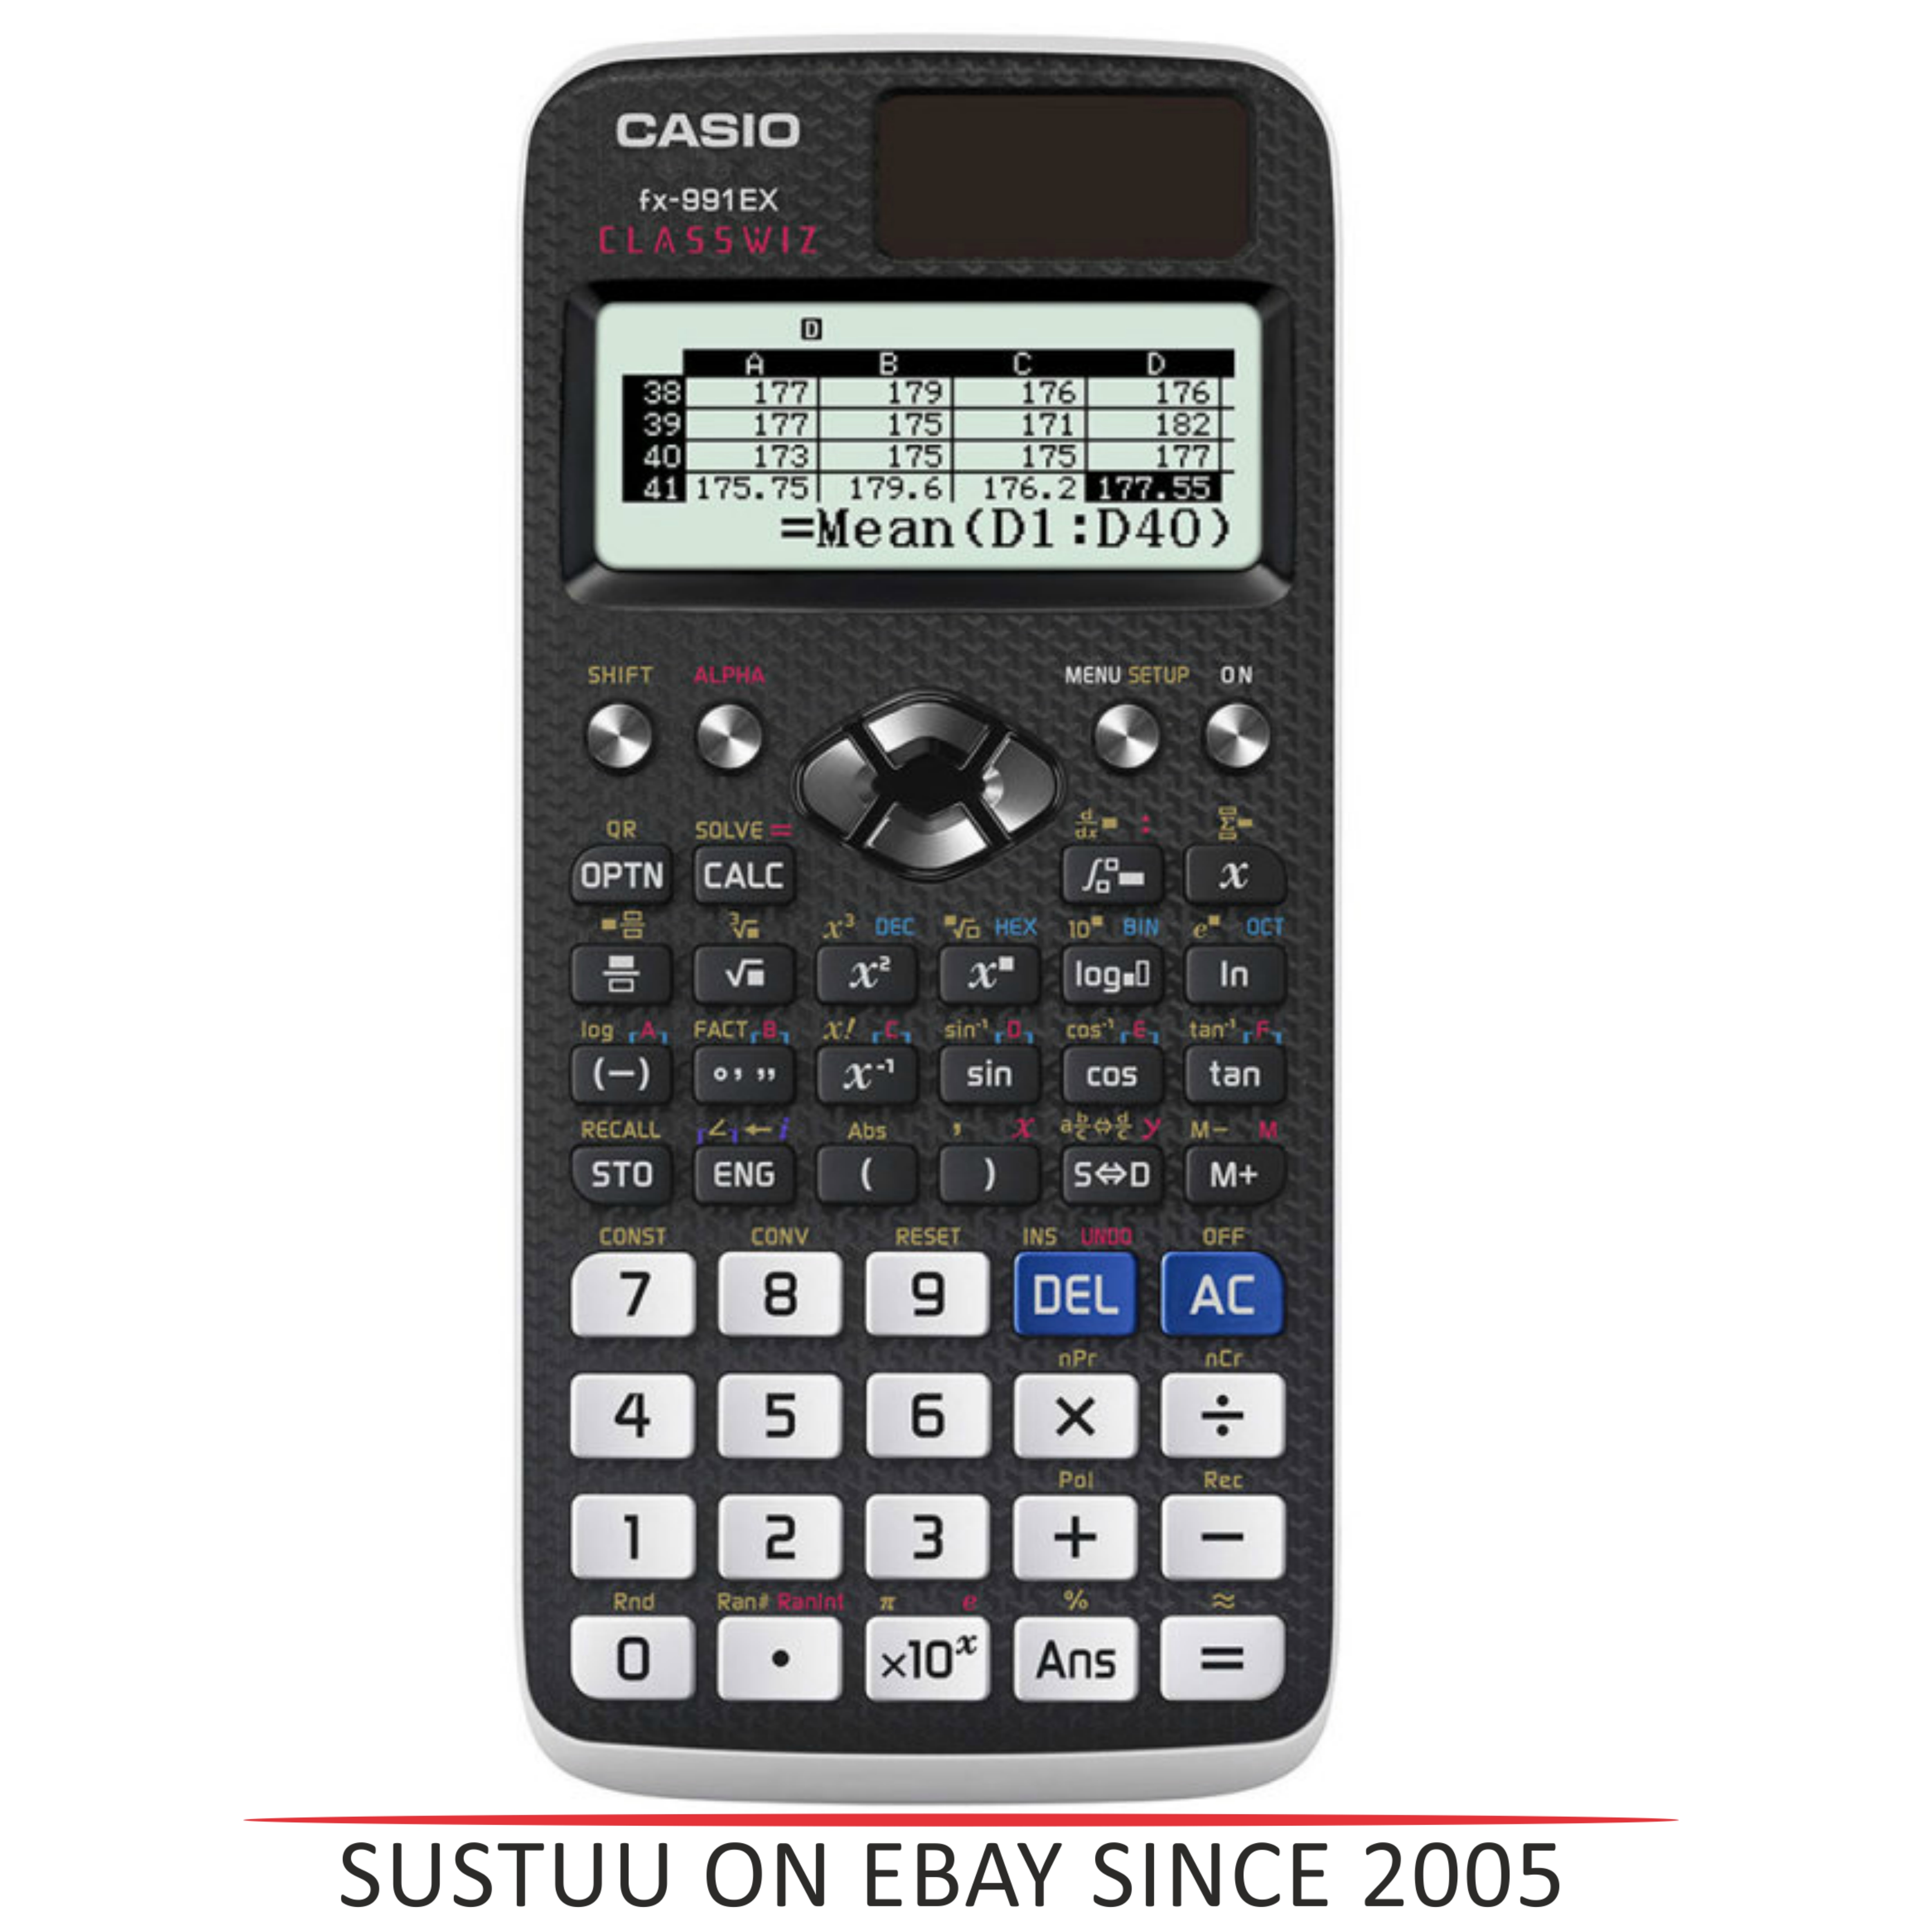 Casio FX991EX ClassWiz Advanced Scientific Calculator|552 Function Spreadsheet|